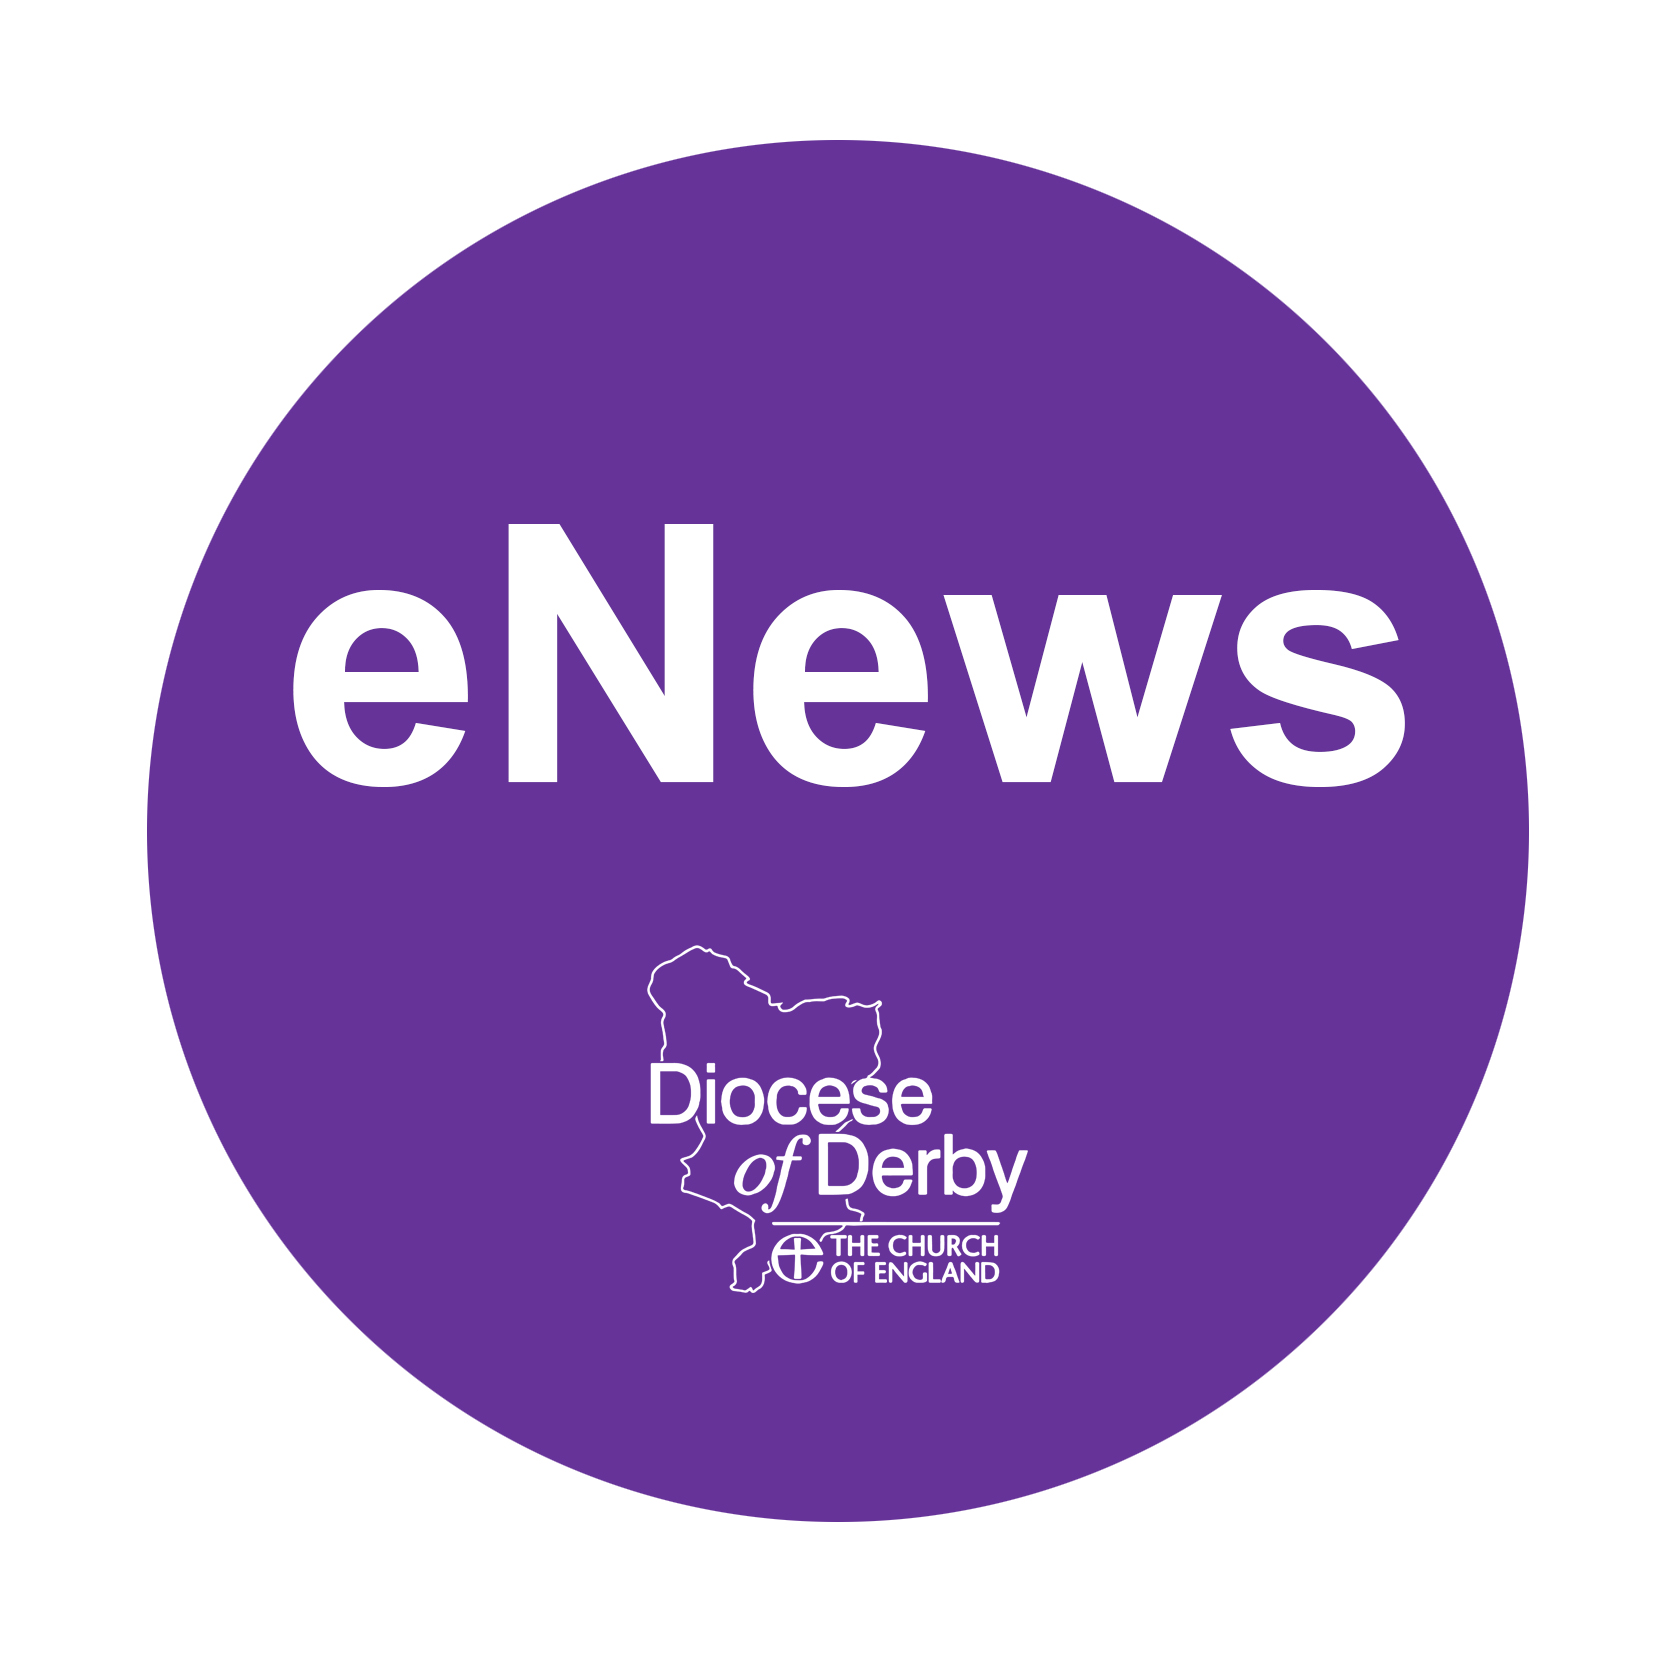 eNews icon 2019 16 9 solid